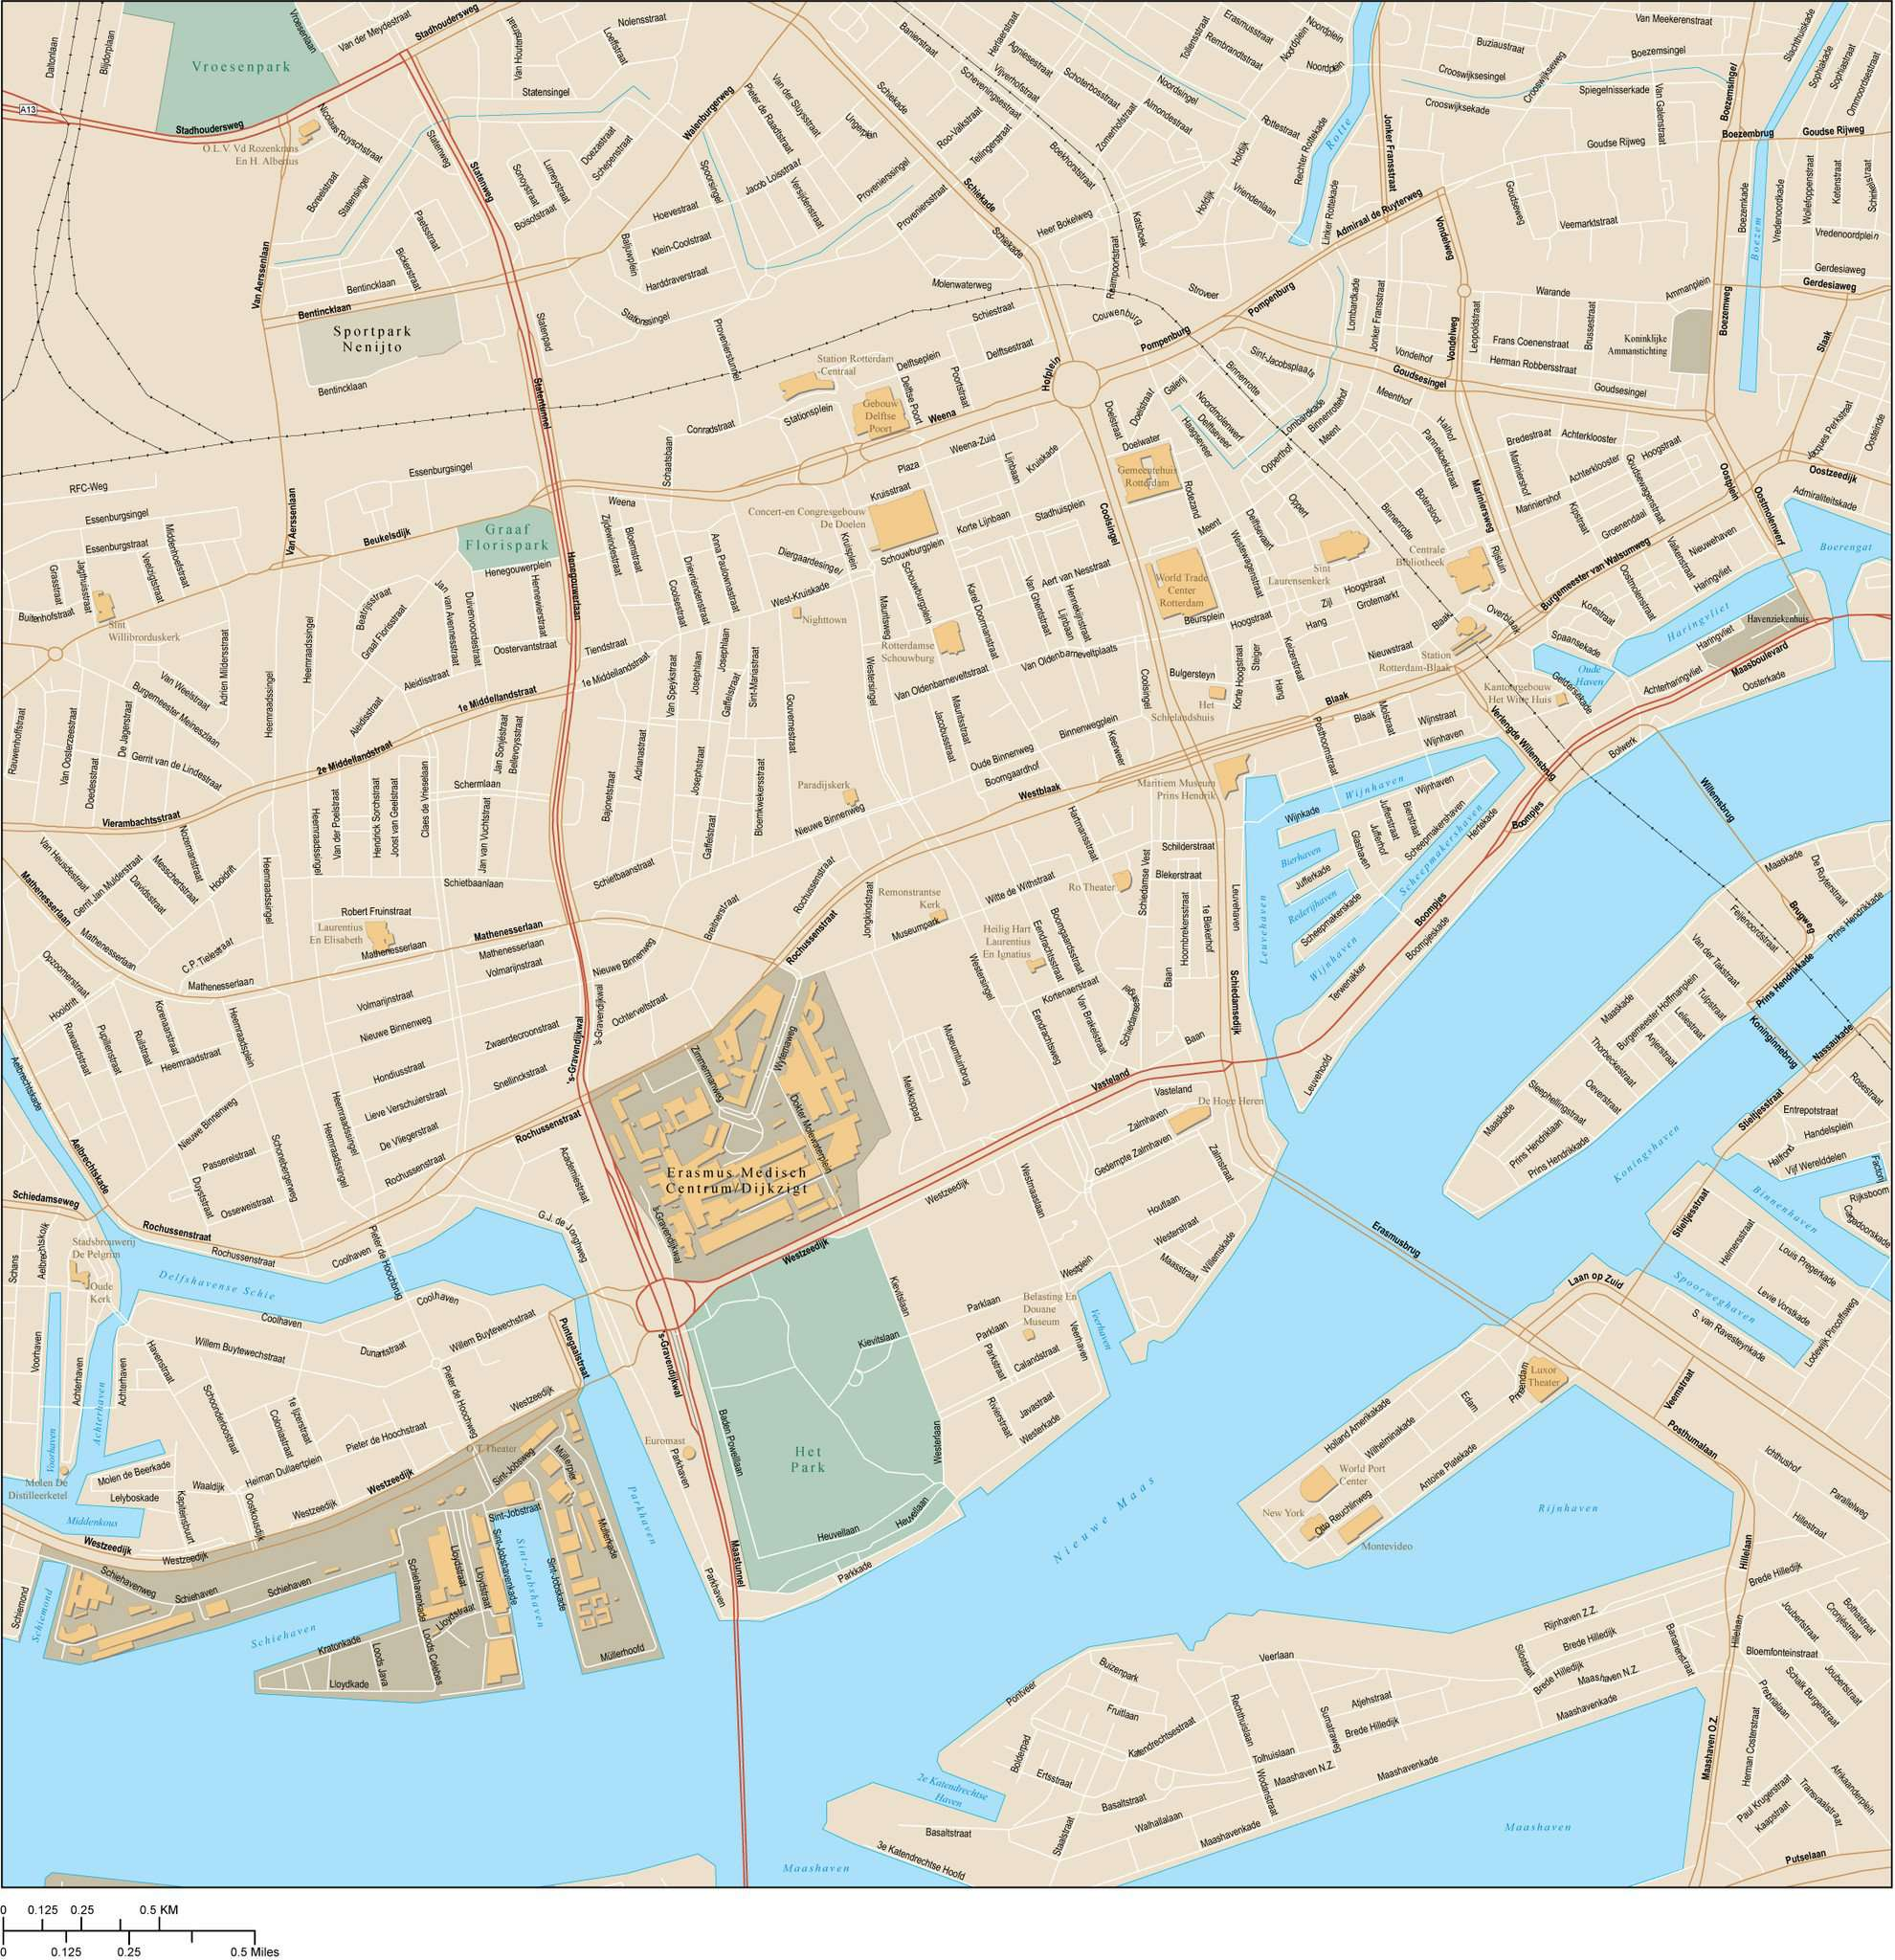 Rotterdam Netherlands Map - Center - 16 square miles - with Local Streets